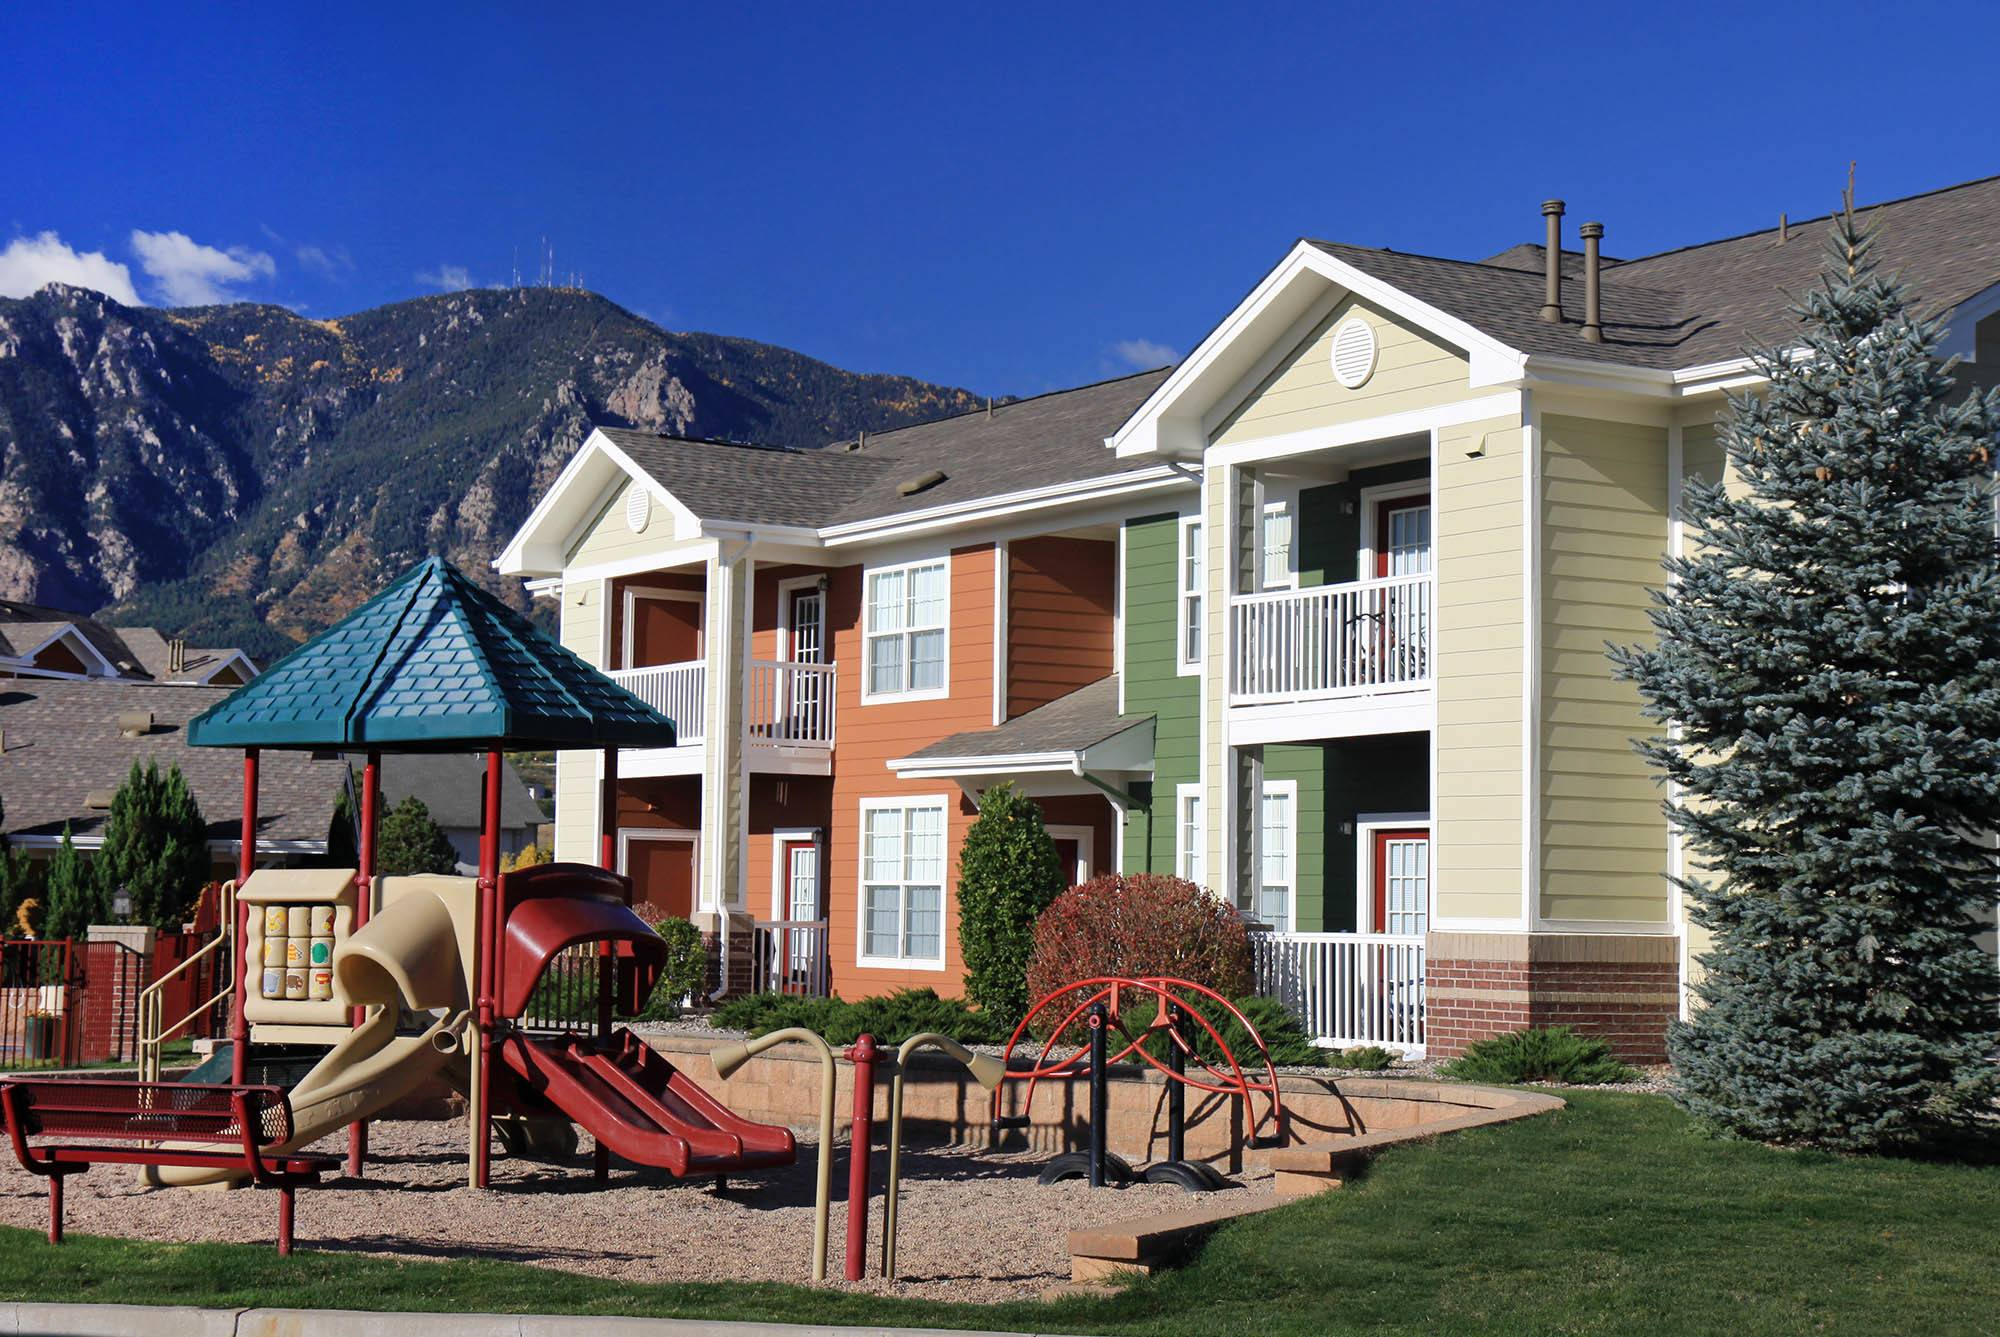 Southside Colorado Springs, CO Apartments for Rent ...